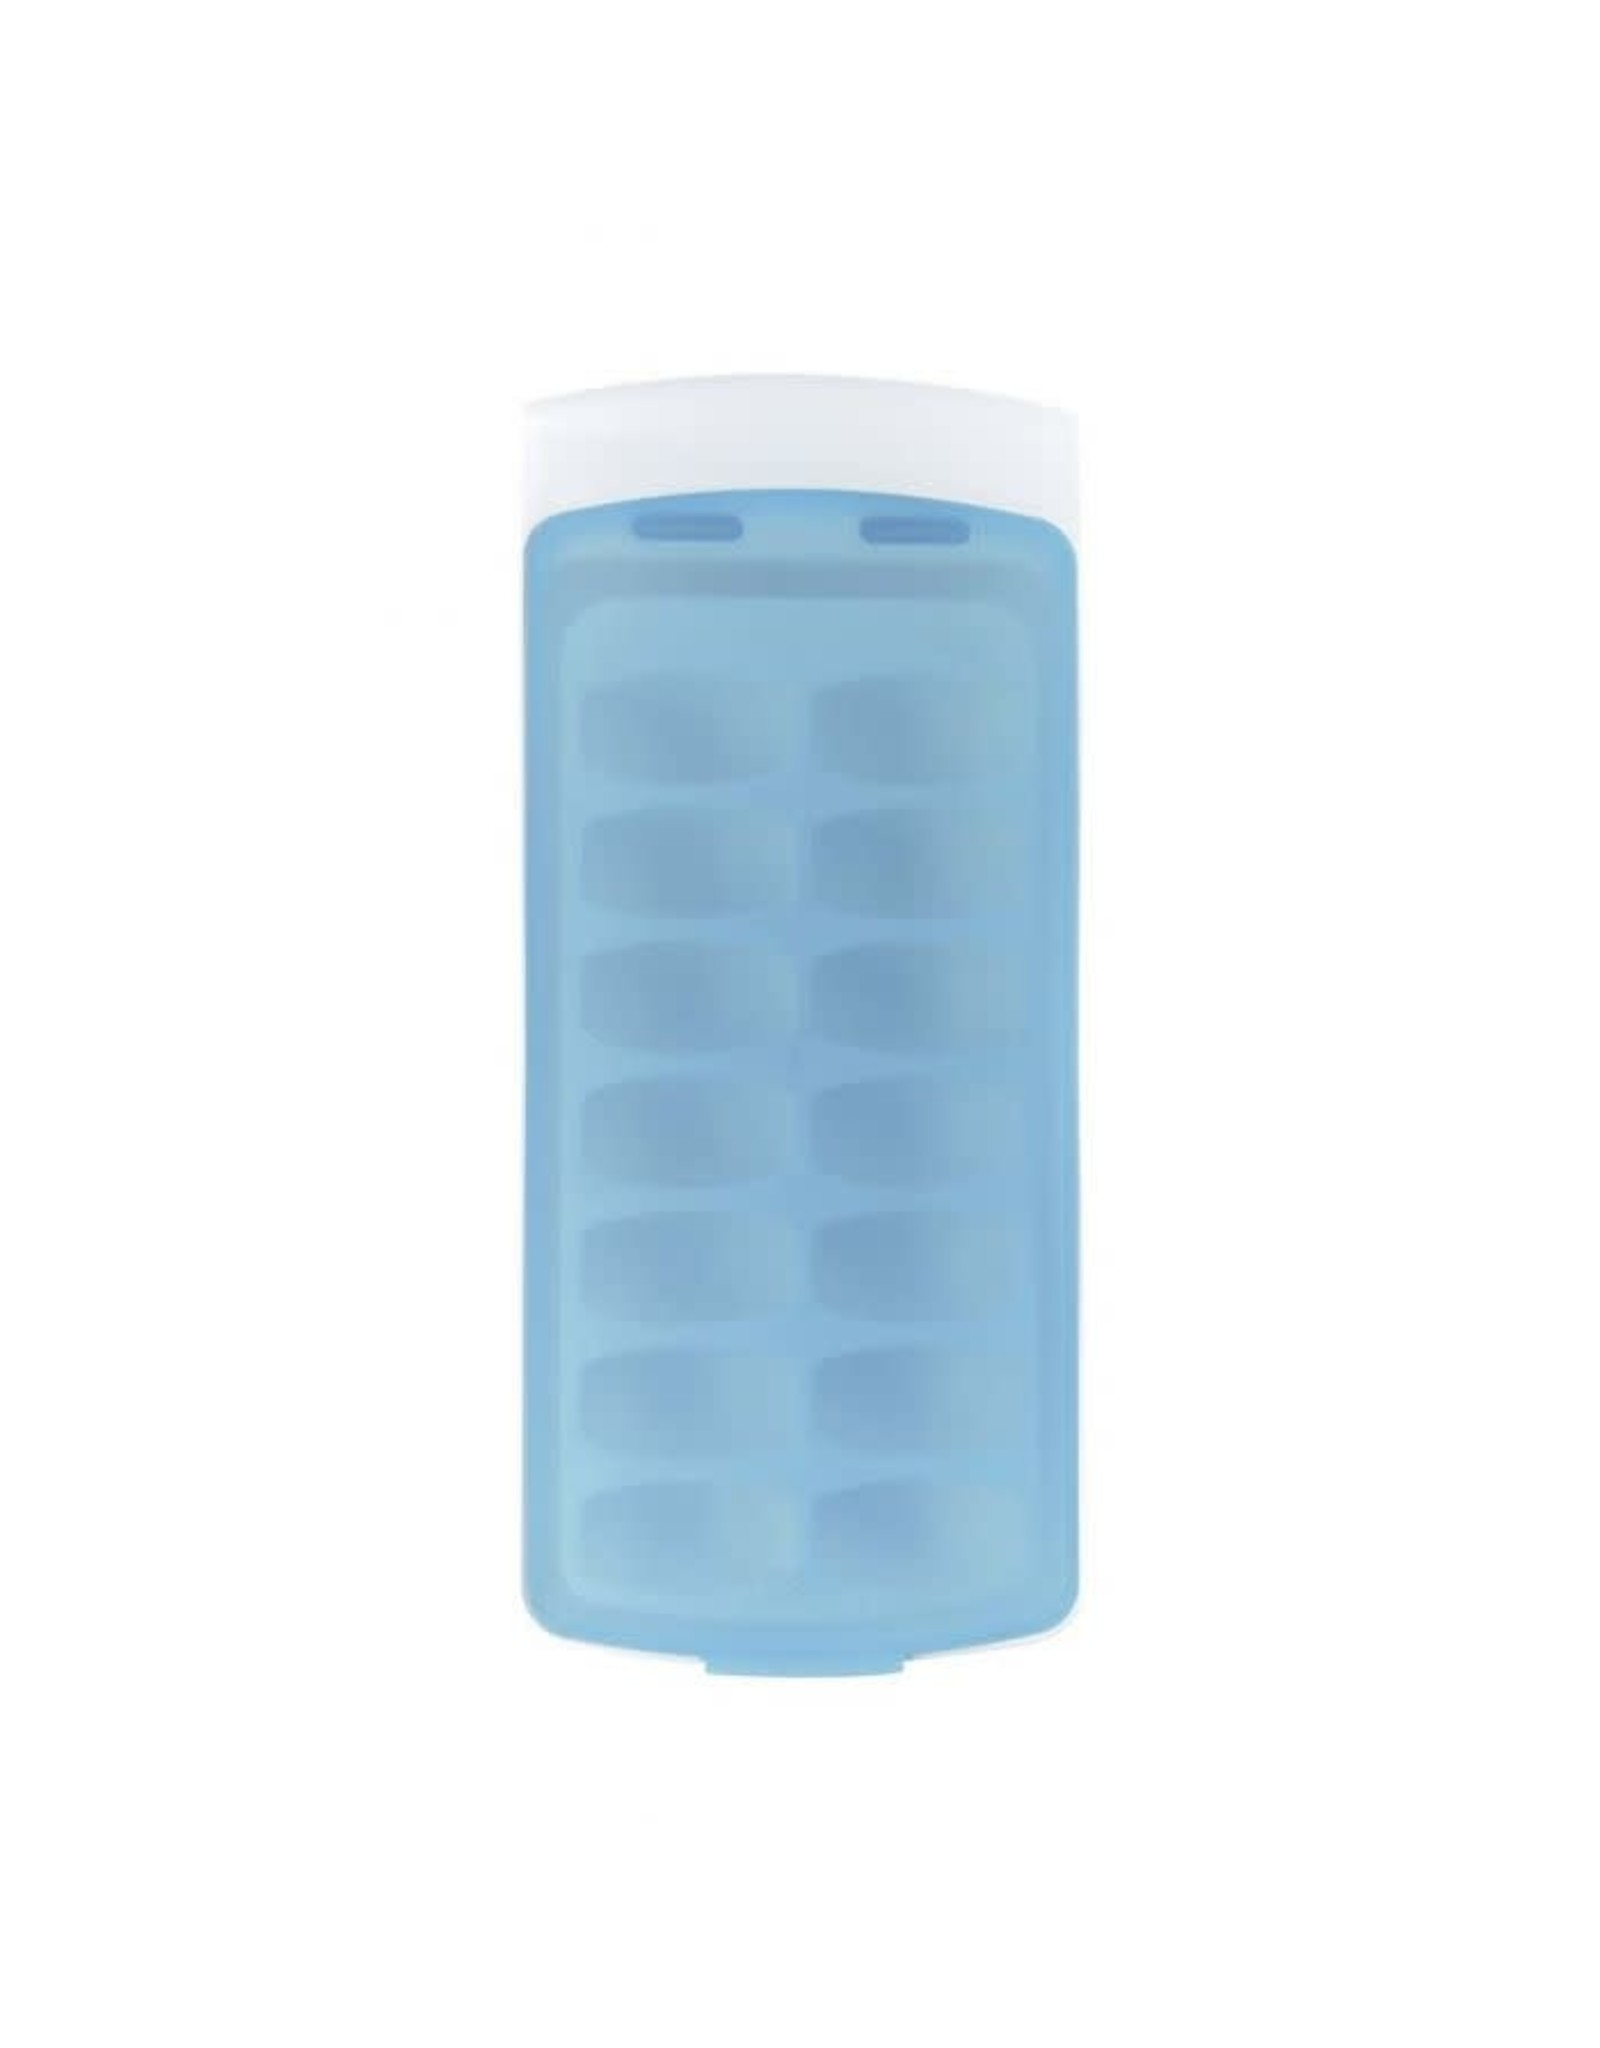 Oxo No Spill Ice Cube Tray, Blue/White